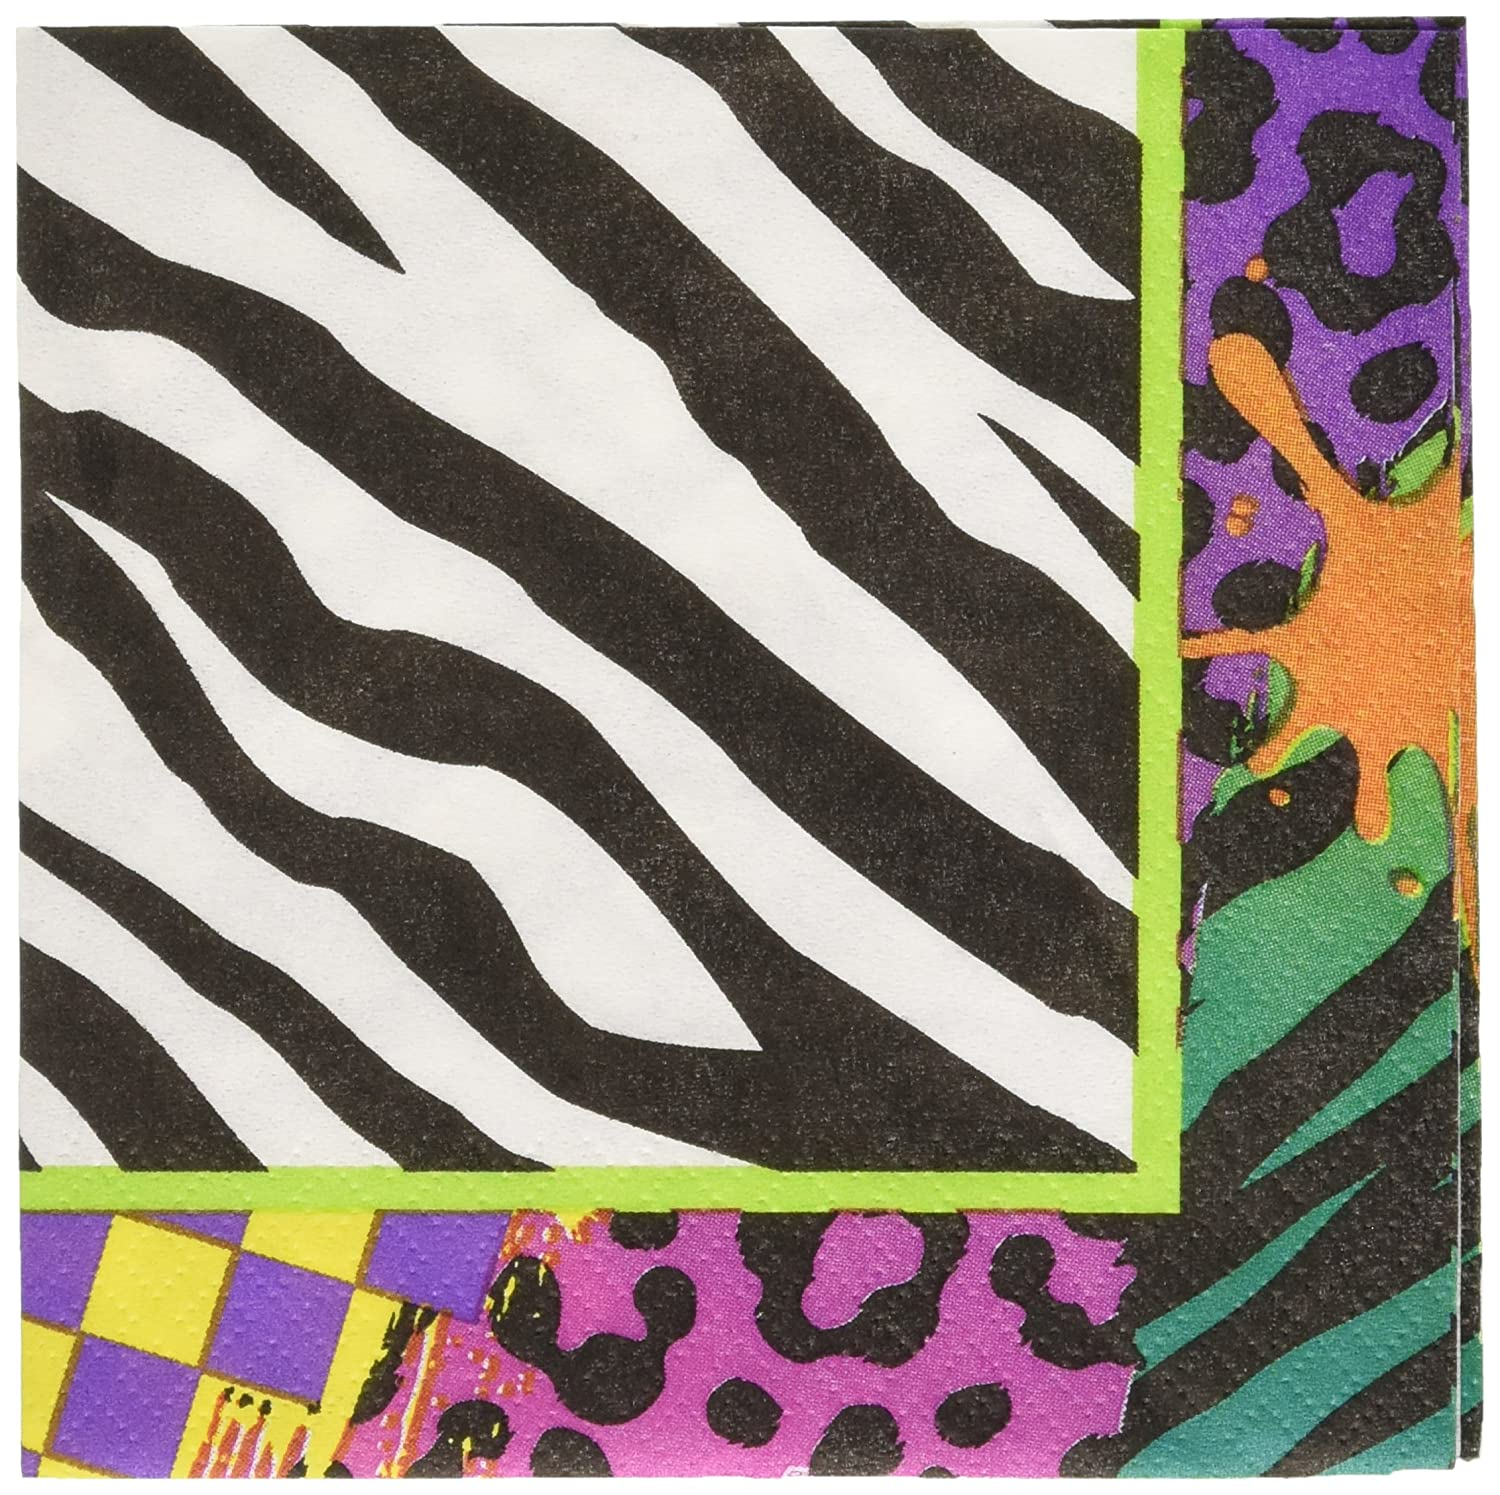 80s Party Beverage Napkins 192 Ct Amscan 501223